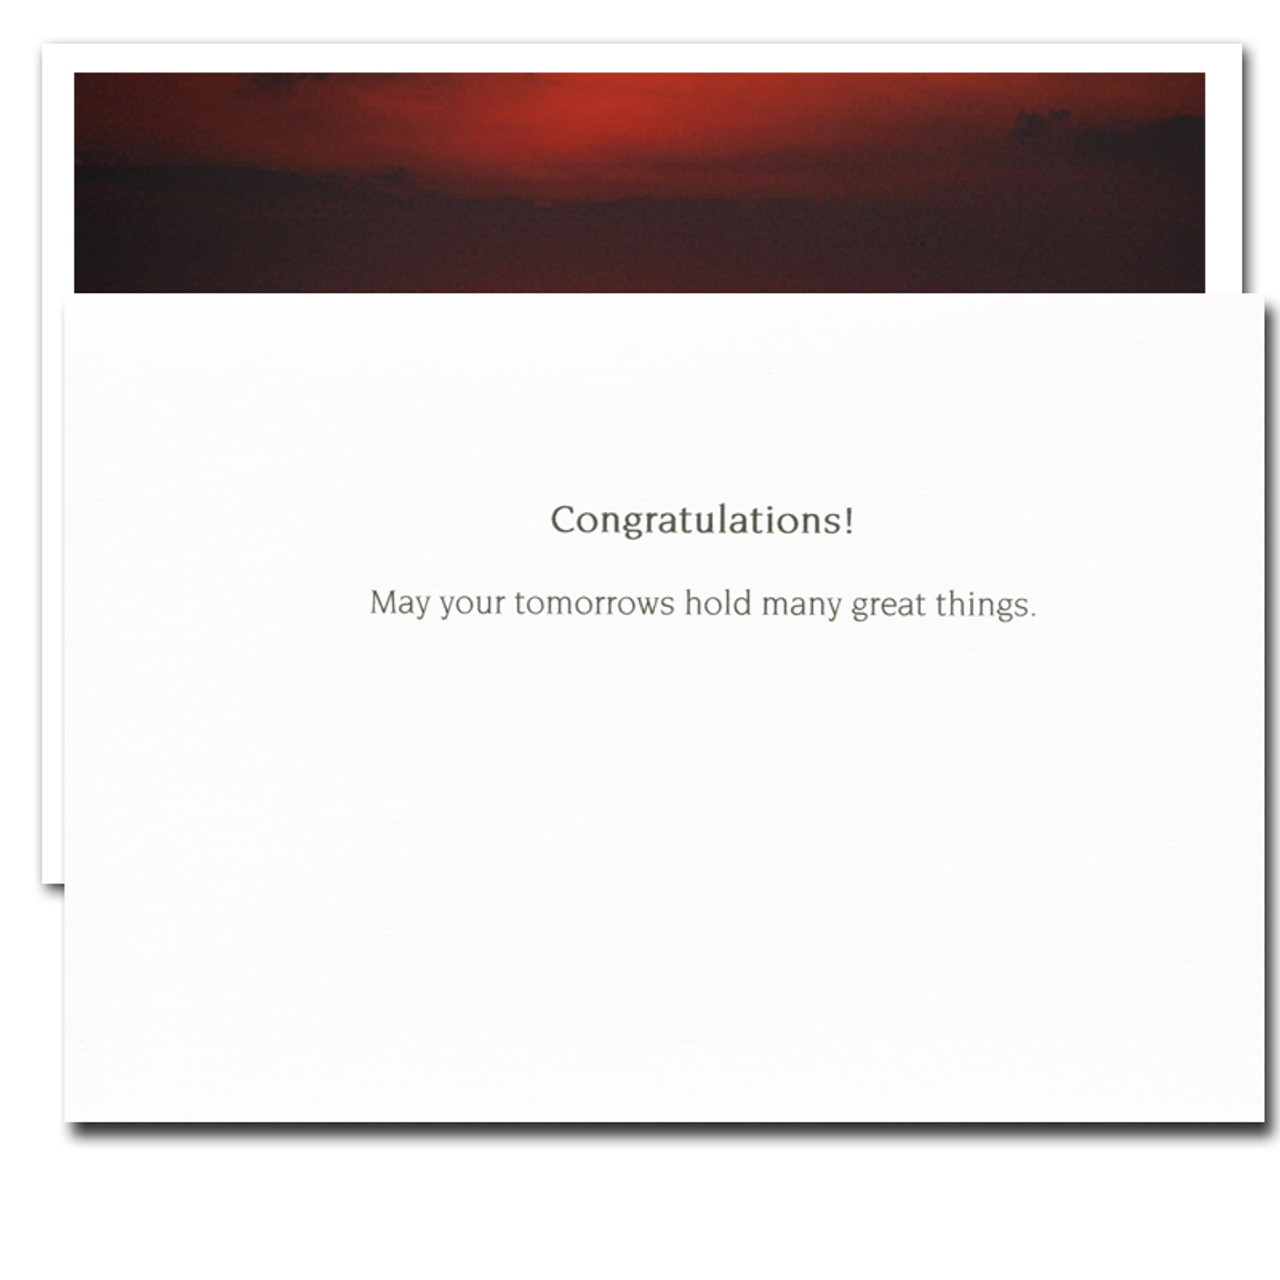 Inside of Great Things Congratulations card reads:  Congratulations! May your tomorrows hold many great things.